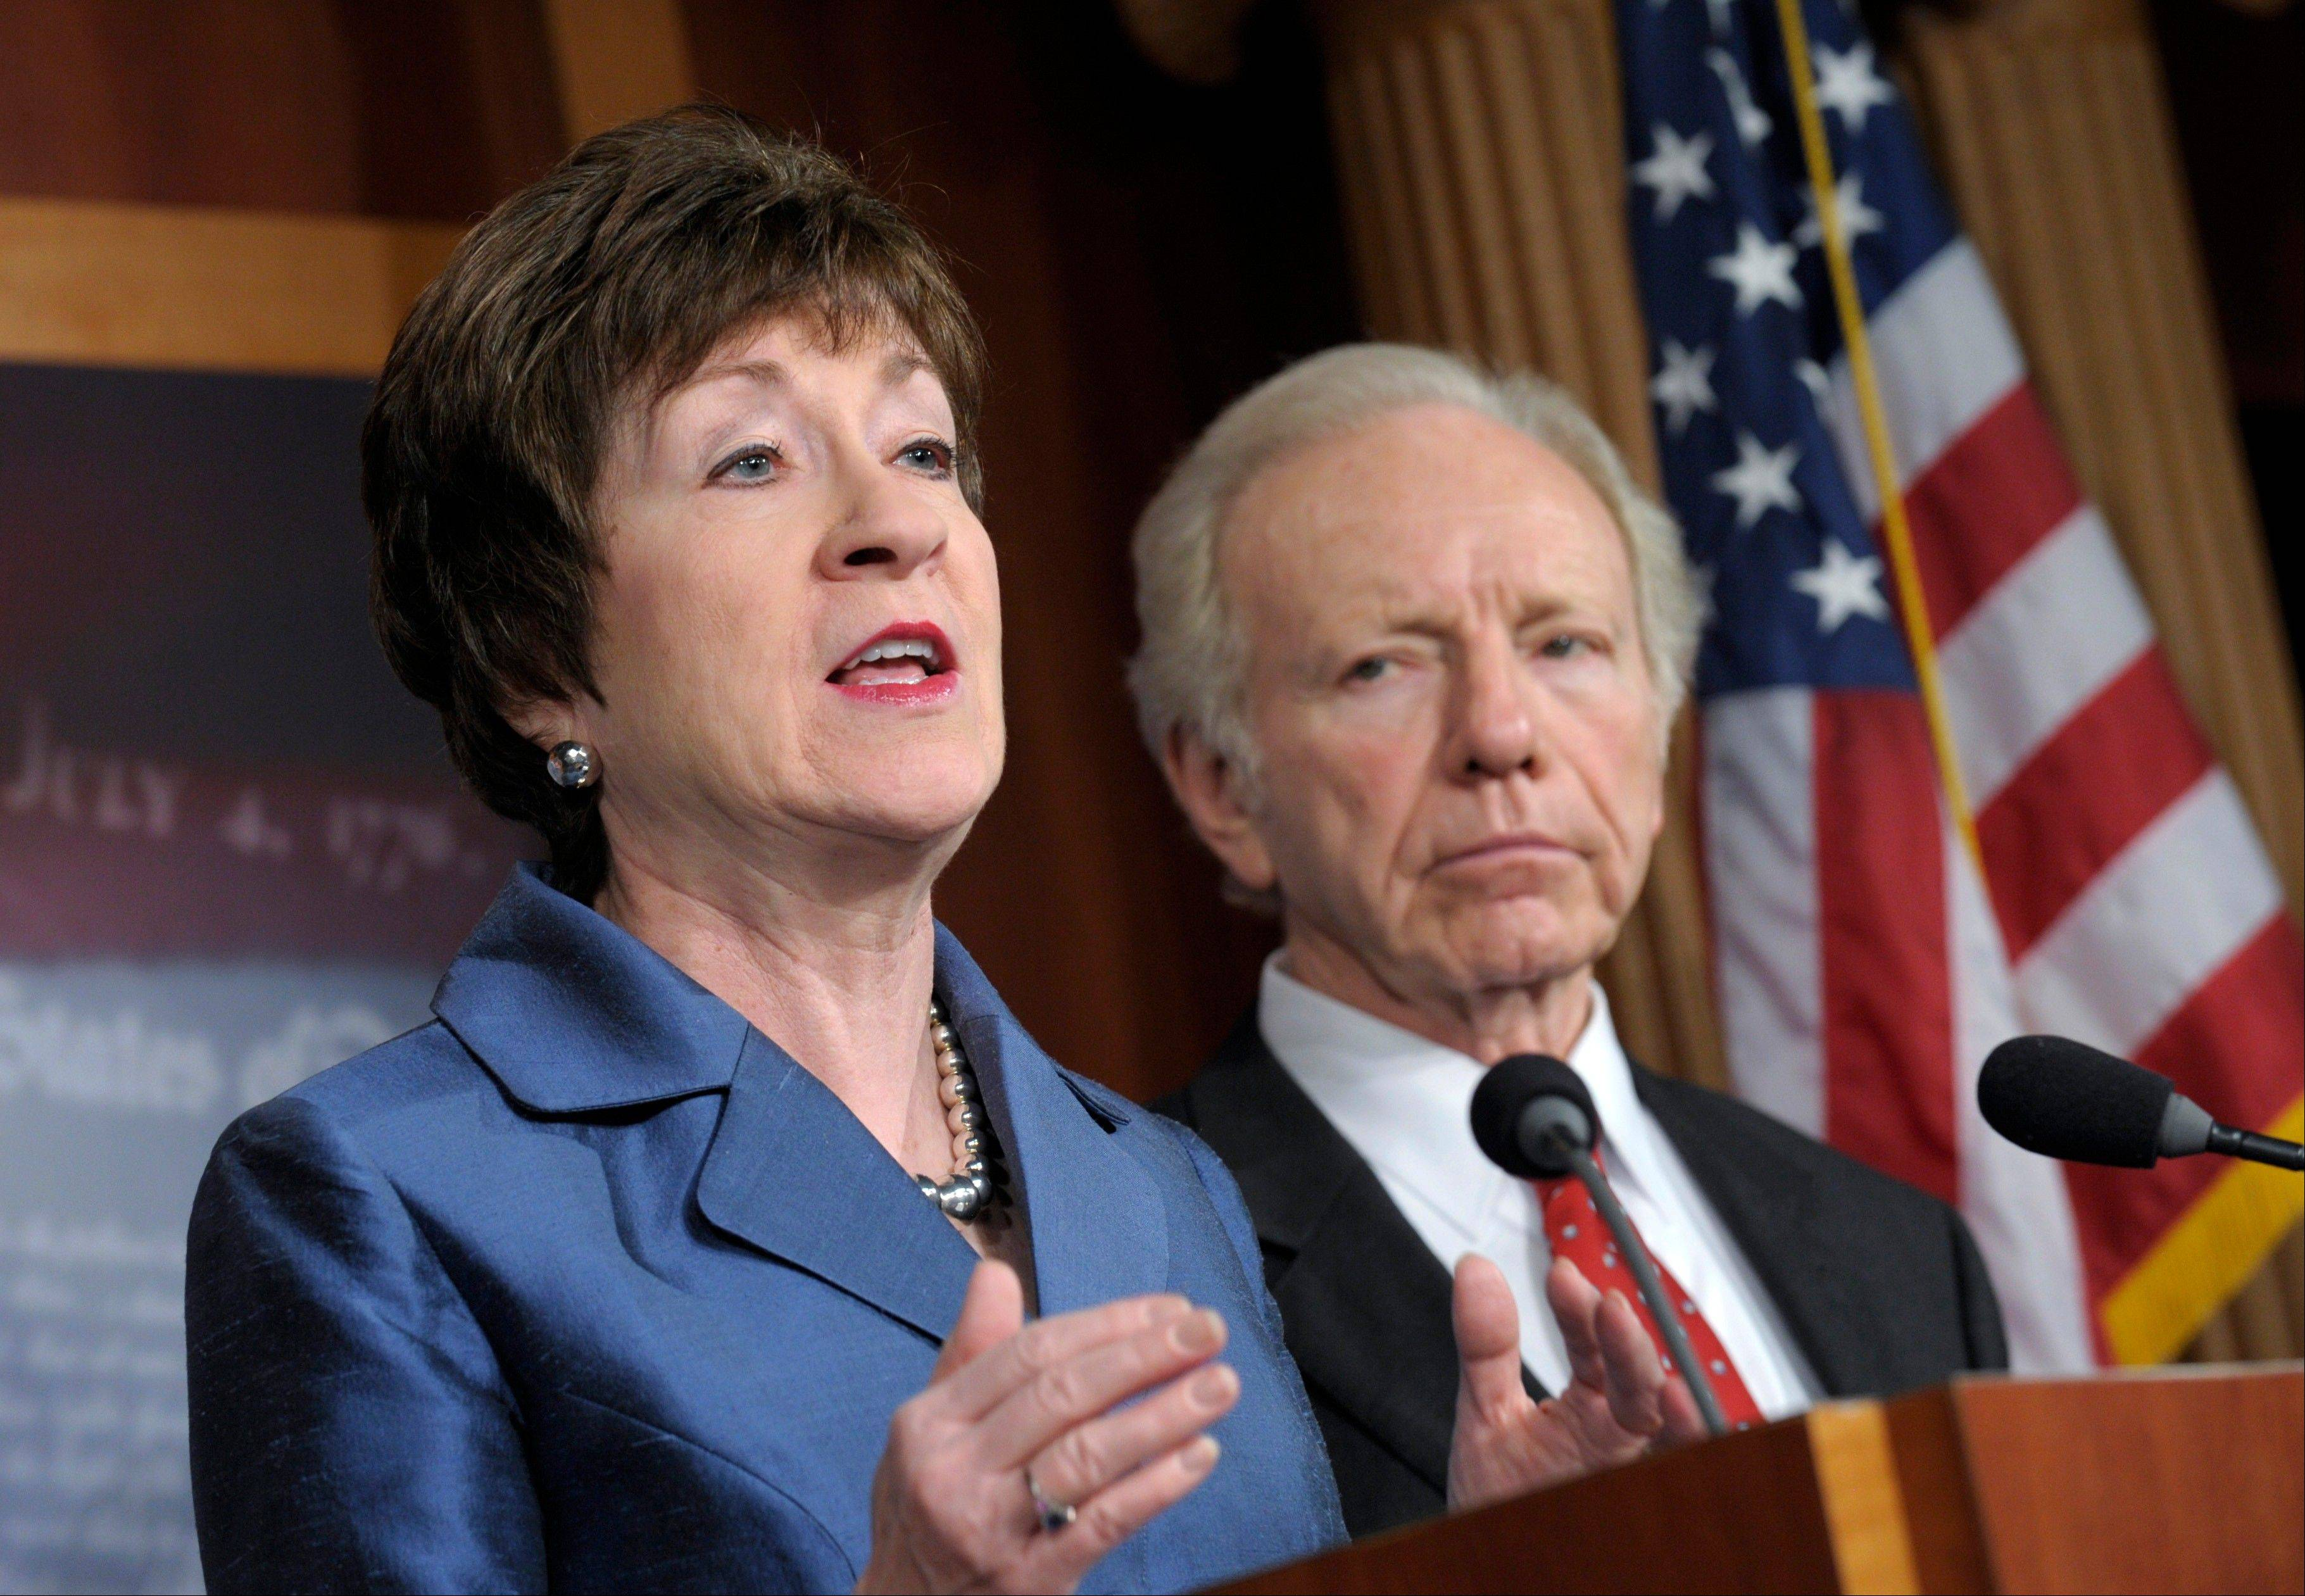 Senate Homeland Security Committee Chairman Sen. Joseph Lieberman listens at right, as the committee's ranking Republican, Sen. Susan Collins, speaks during a news conference on Capitol Hill Monday to discuss the committee's report on the security deficiencies at the U.S. Mission in Benghazi, Libya.